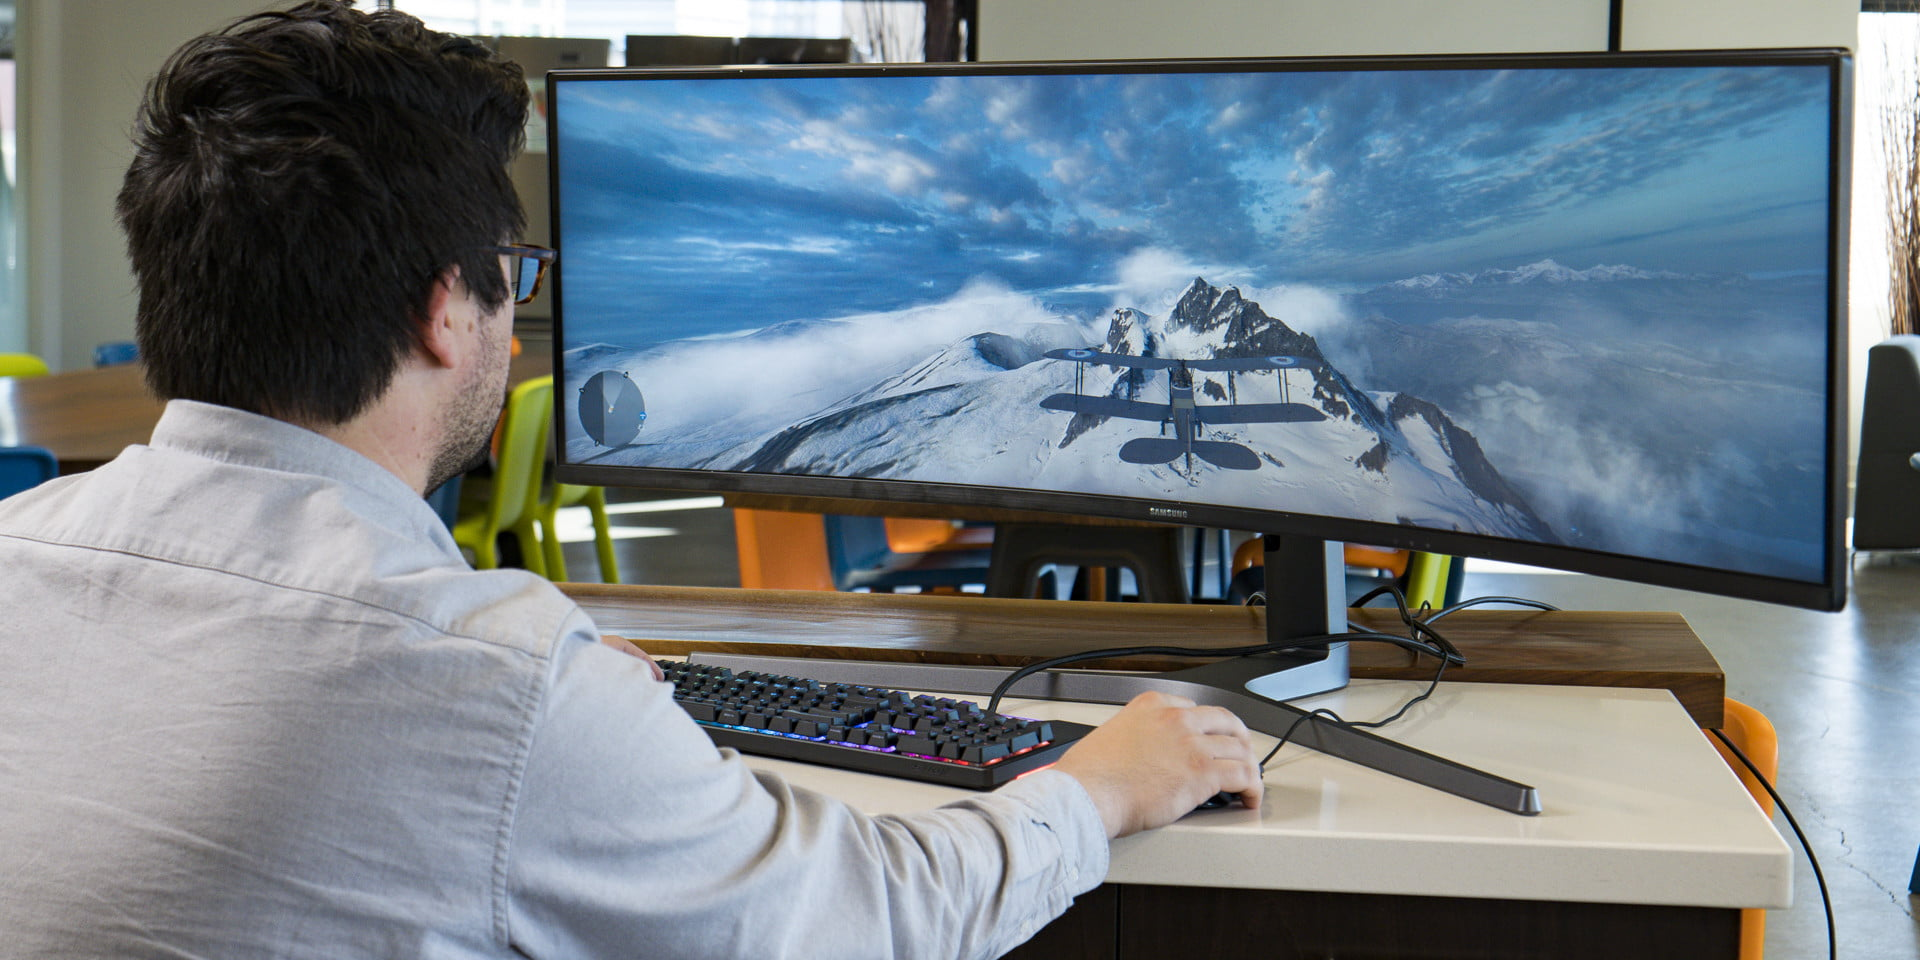 Spanning 49 inches, this gaming monitor is the next best thing to VR